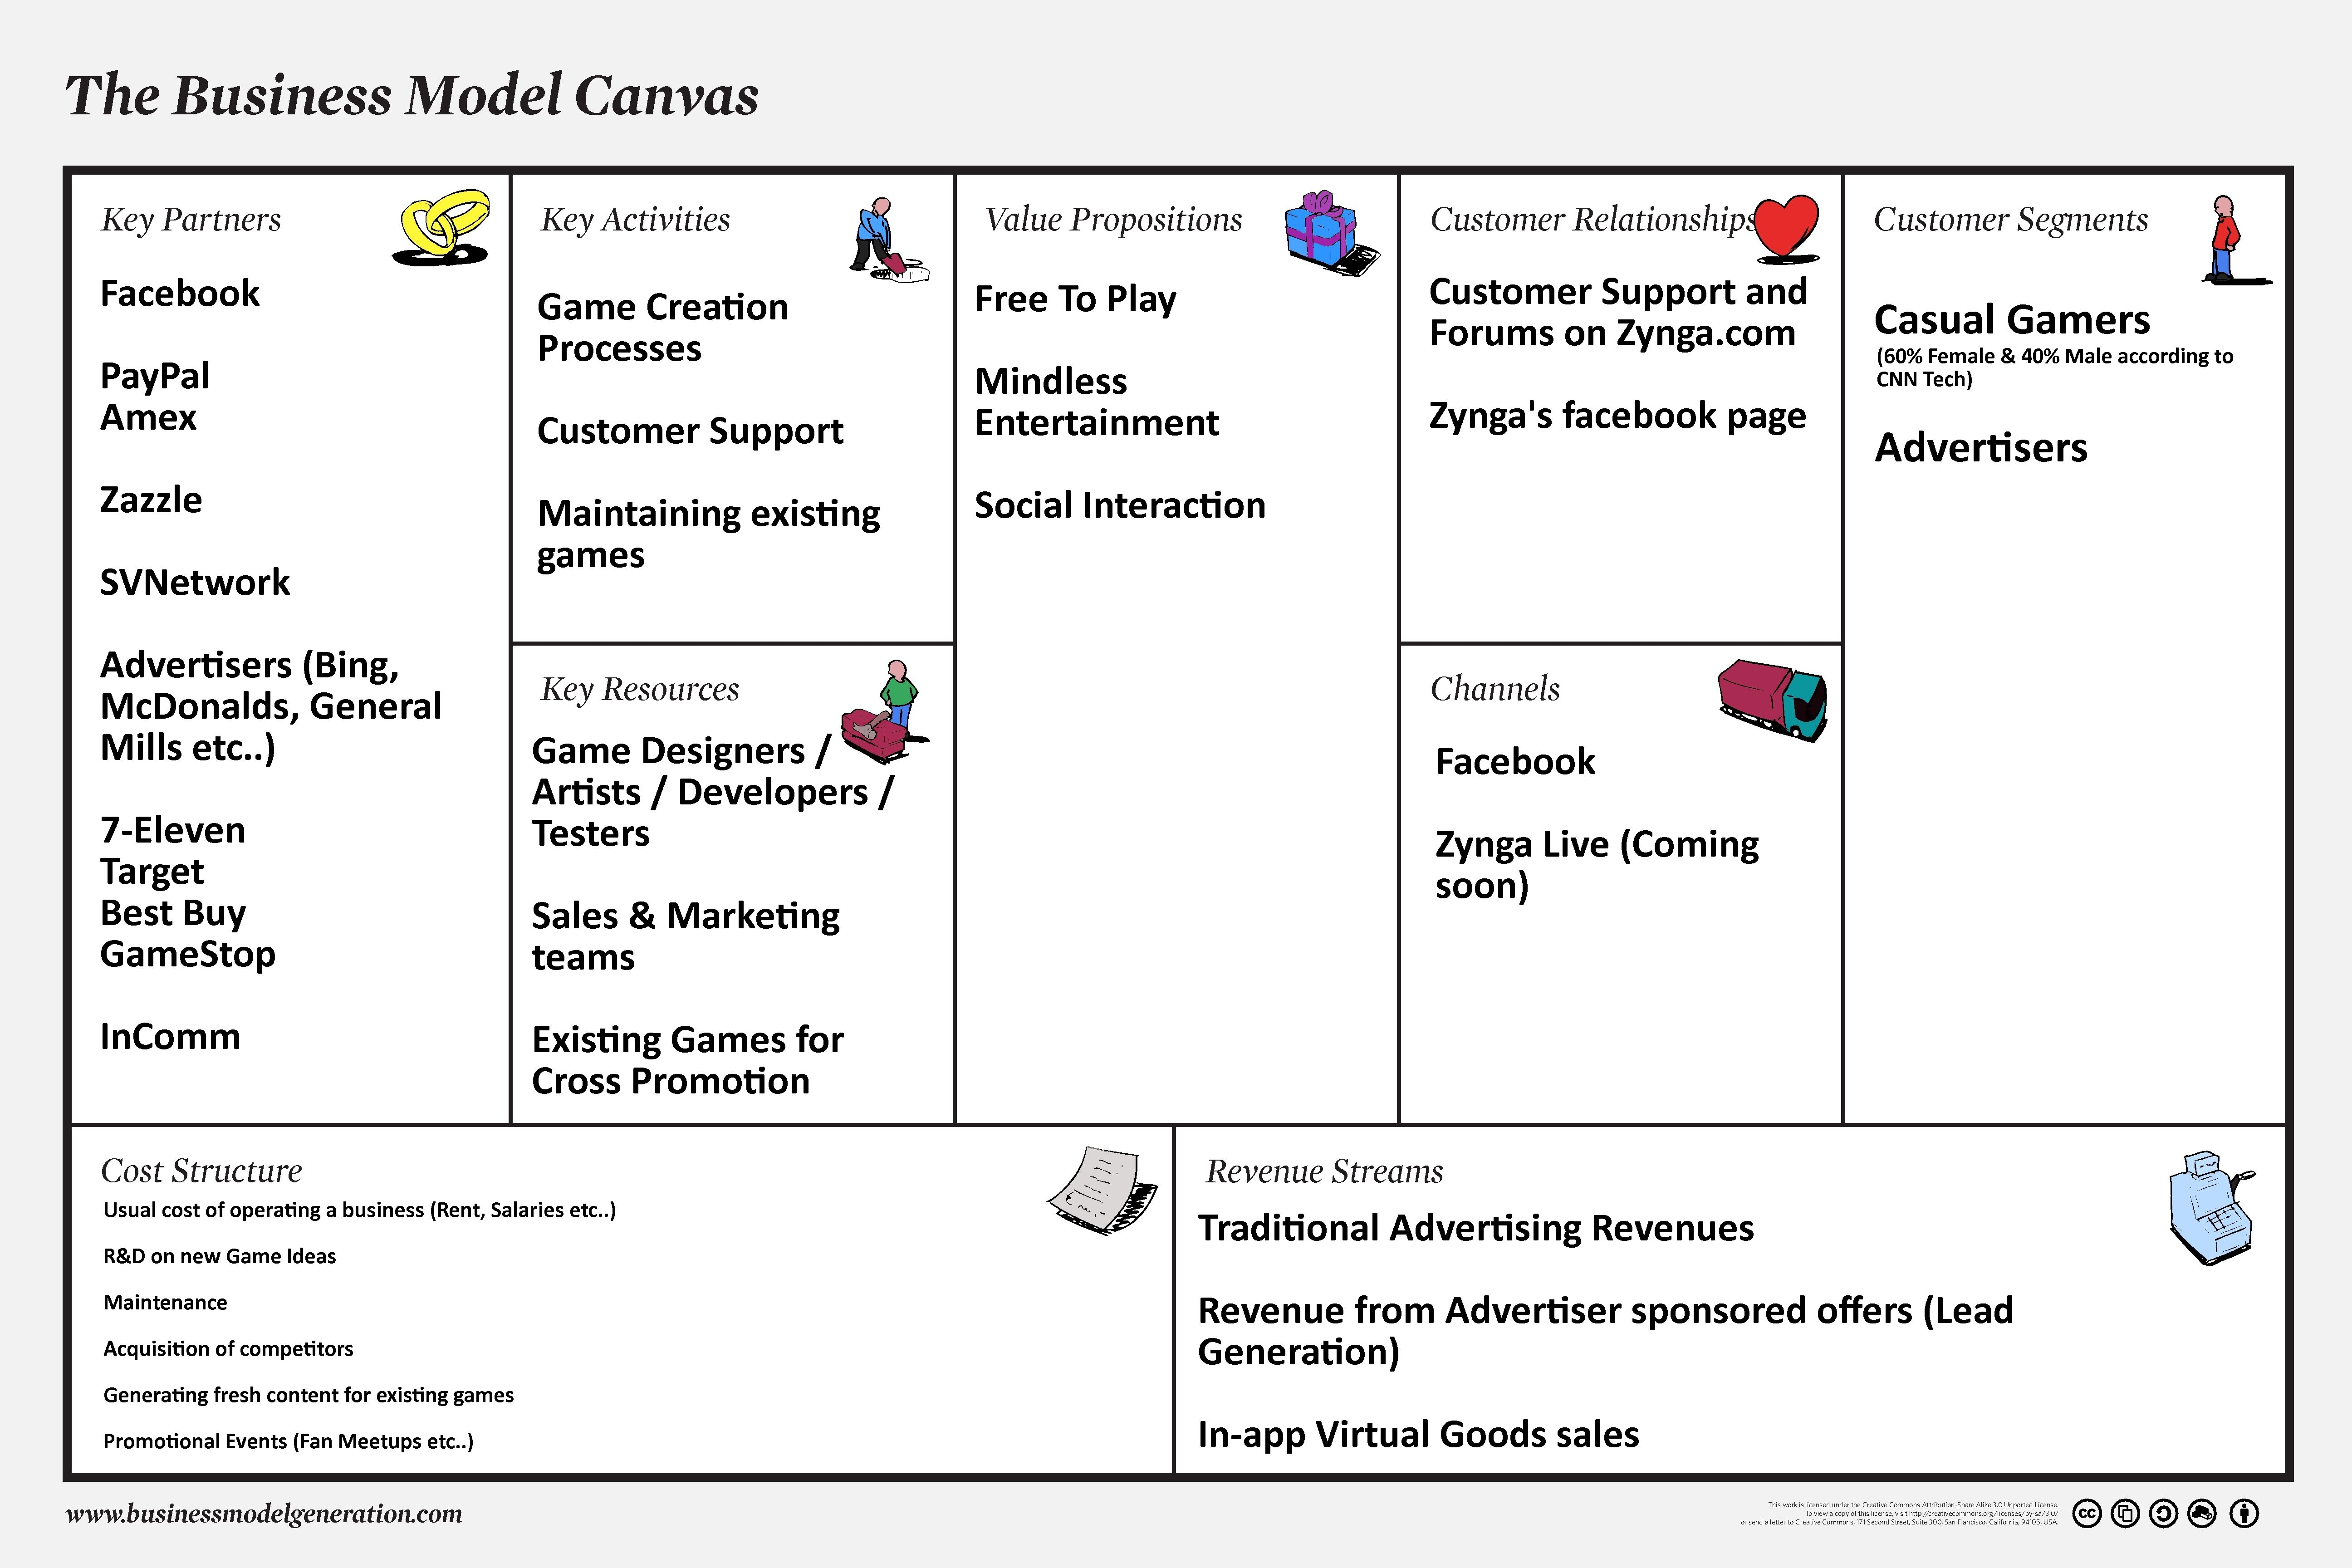 17 Best images about Business Model Canvas on Pinterest | A ...